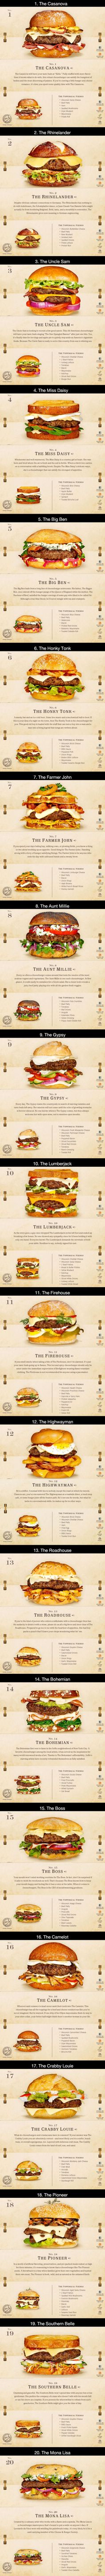 After an huge amount of requests: So I heard you like Burgers Part 2 (which actually is part 1) for you - 9GAG